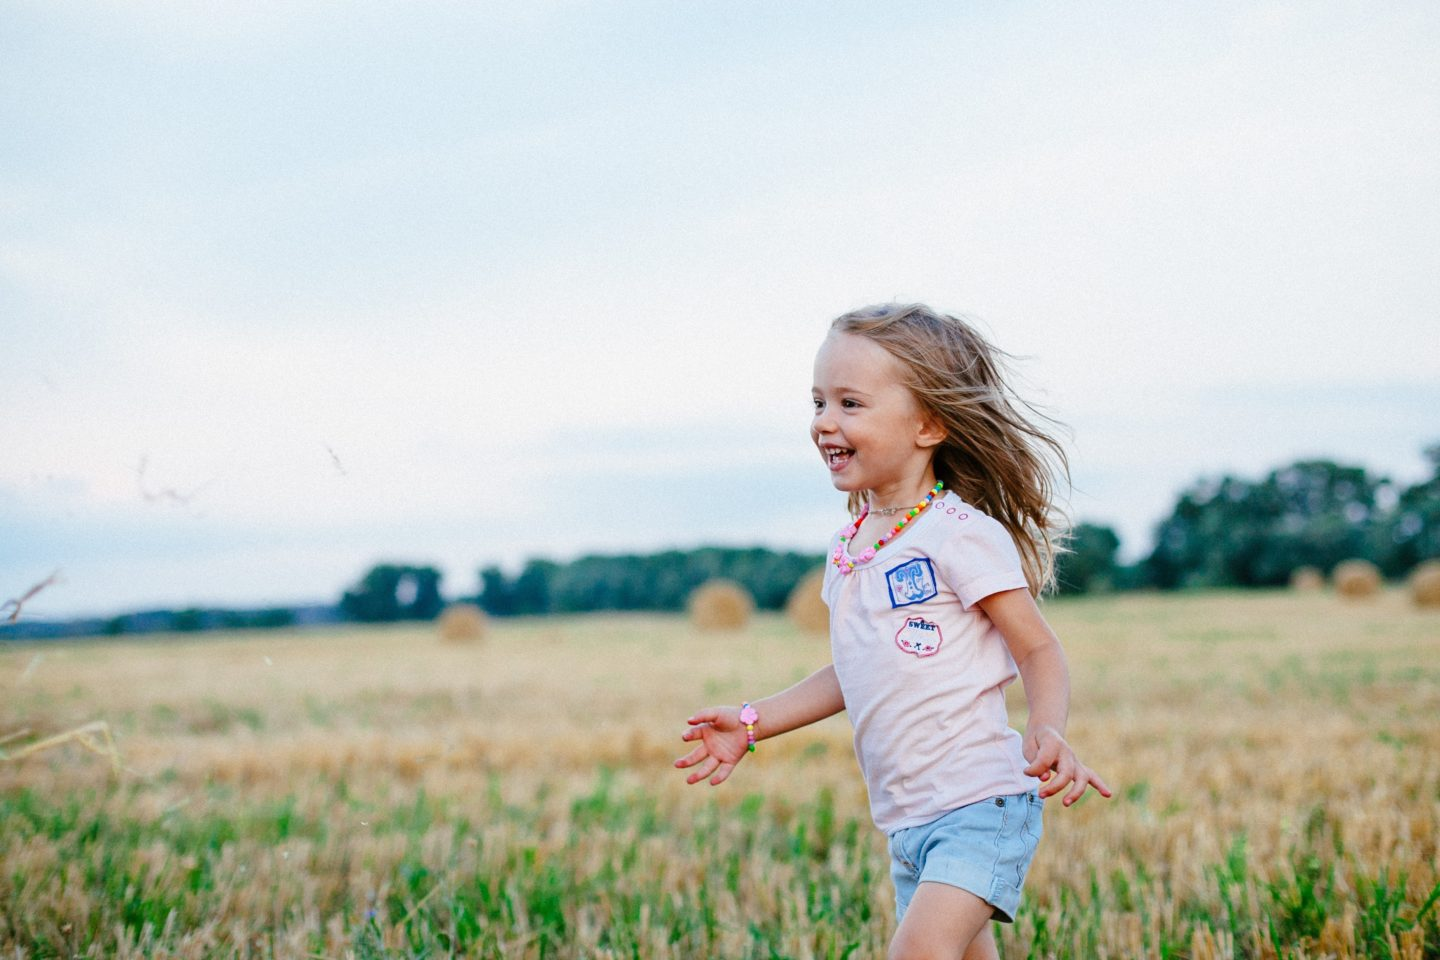 Ways To Put A Smile On Your Child's Face When They're Not Doing Too Good